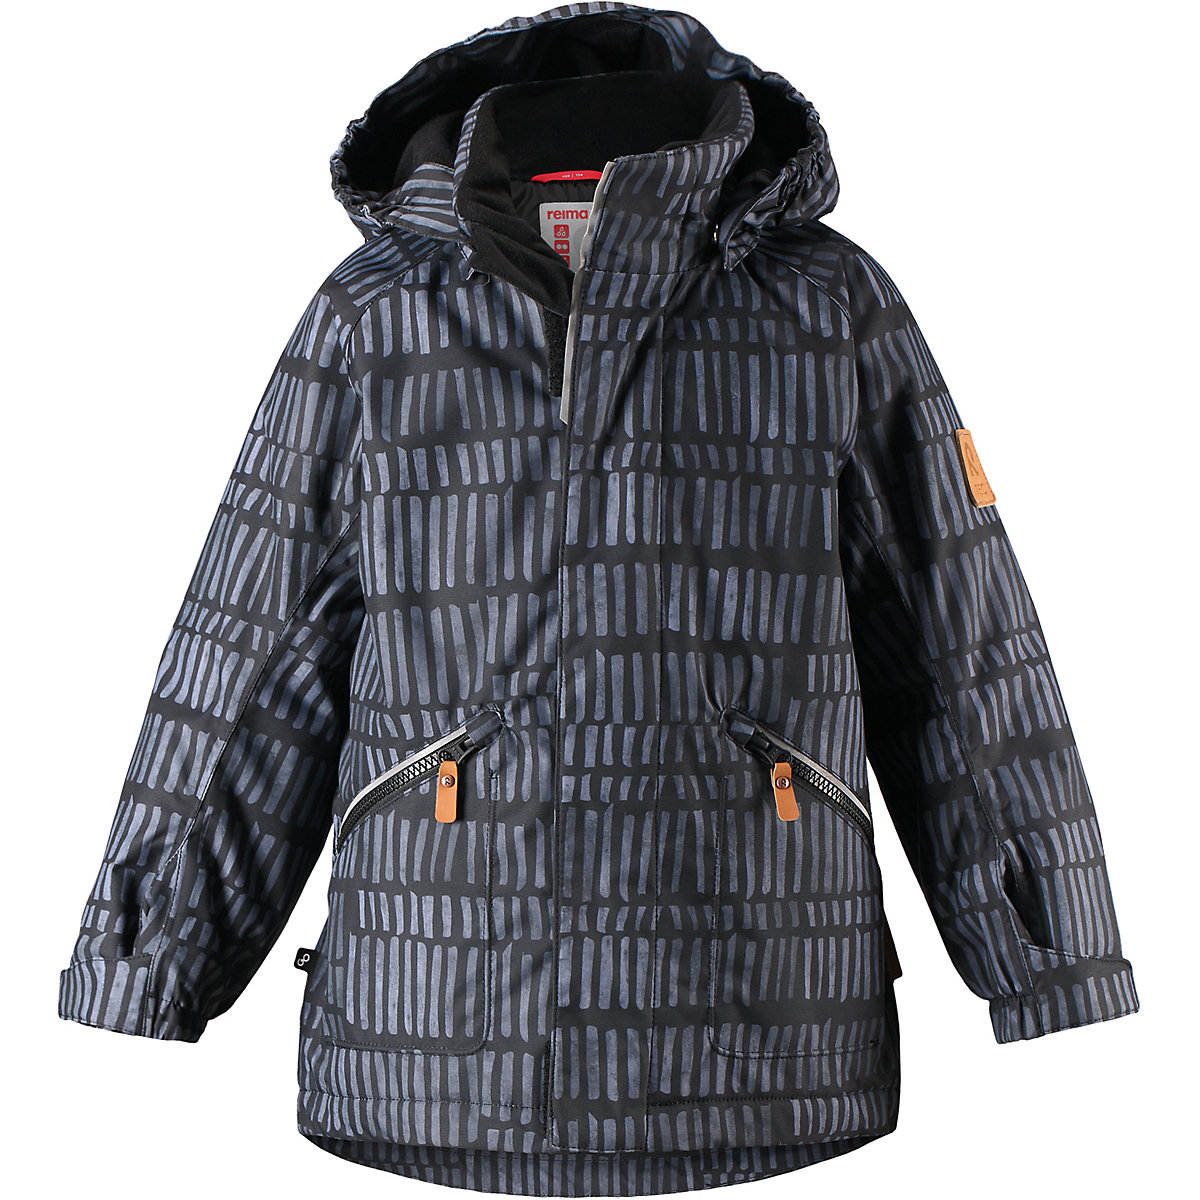 REIMA Jackets & Coats 8689684 for boys baby clothing winter warm boy girl jacket Polyester motorcycle jacket men winter motorcycle riding jacket windproof reflective motorbike clothing moto jaqueta motorcycle racing